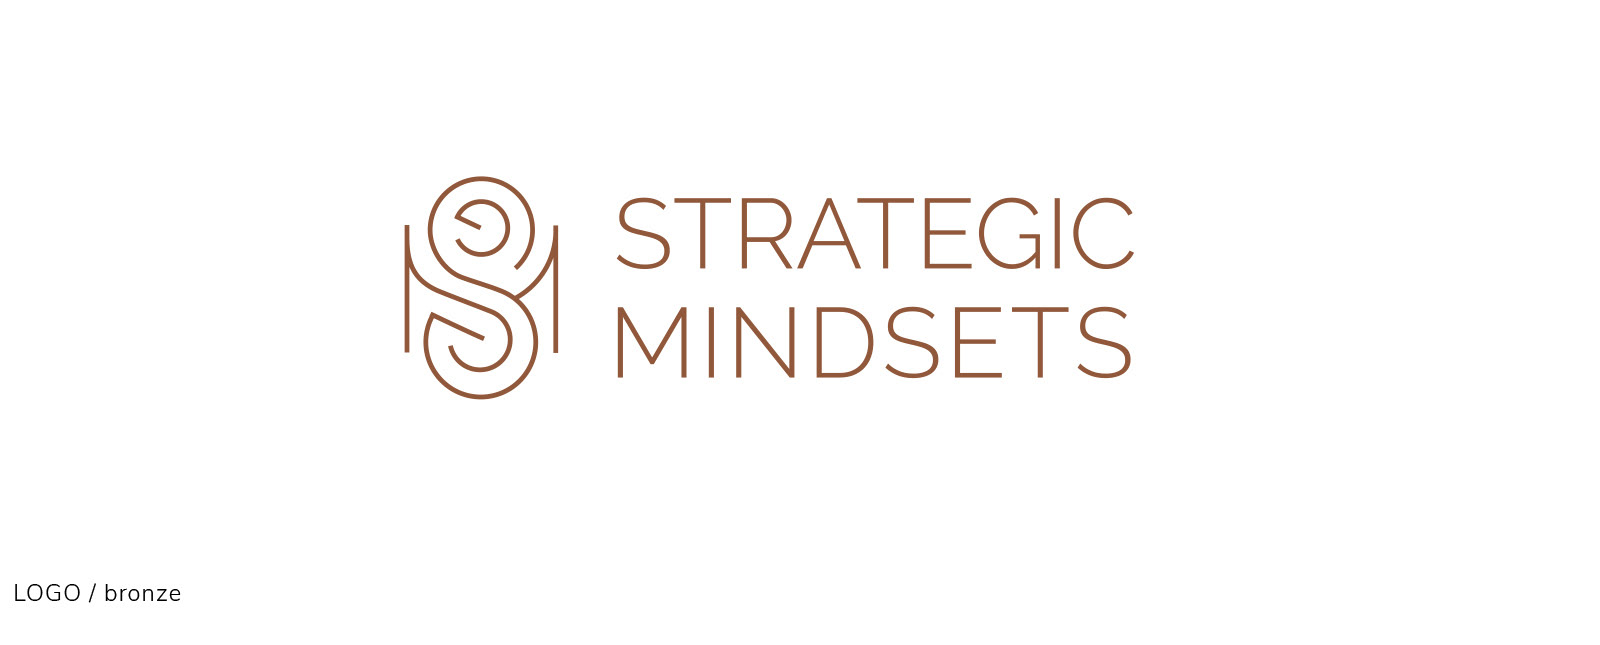 the-collective-one-strategic-mindsets-7